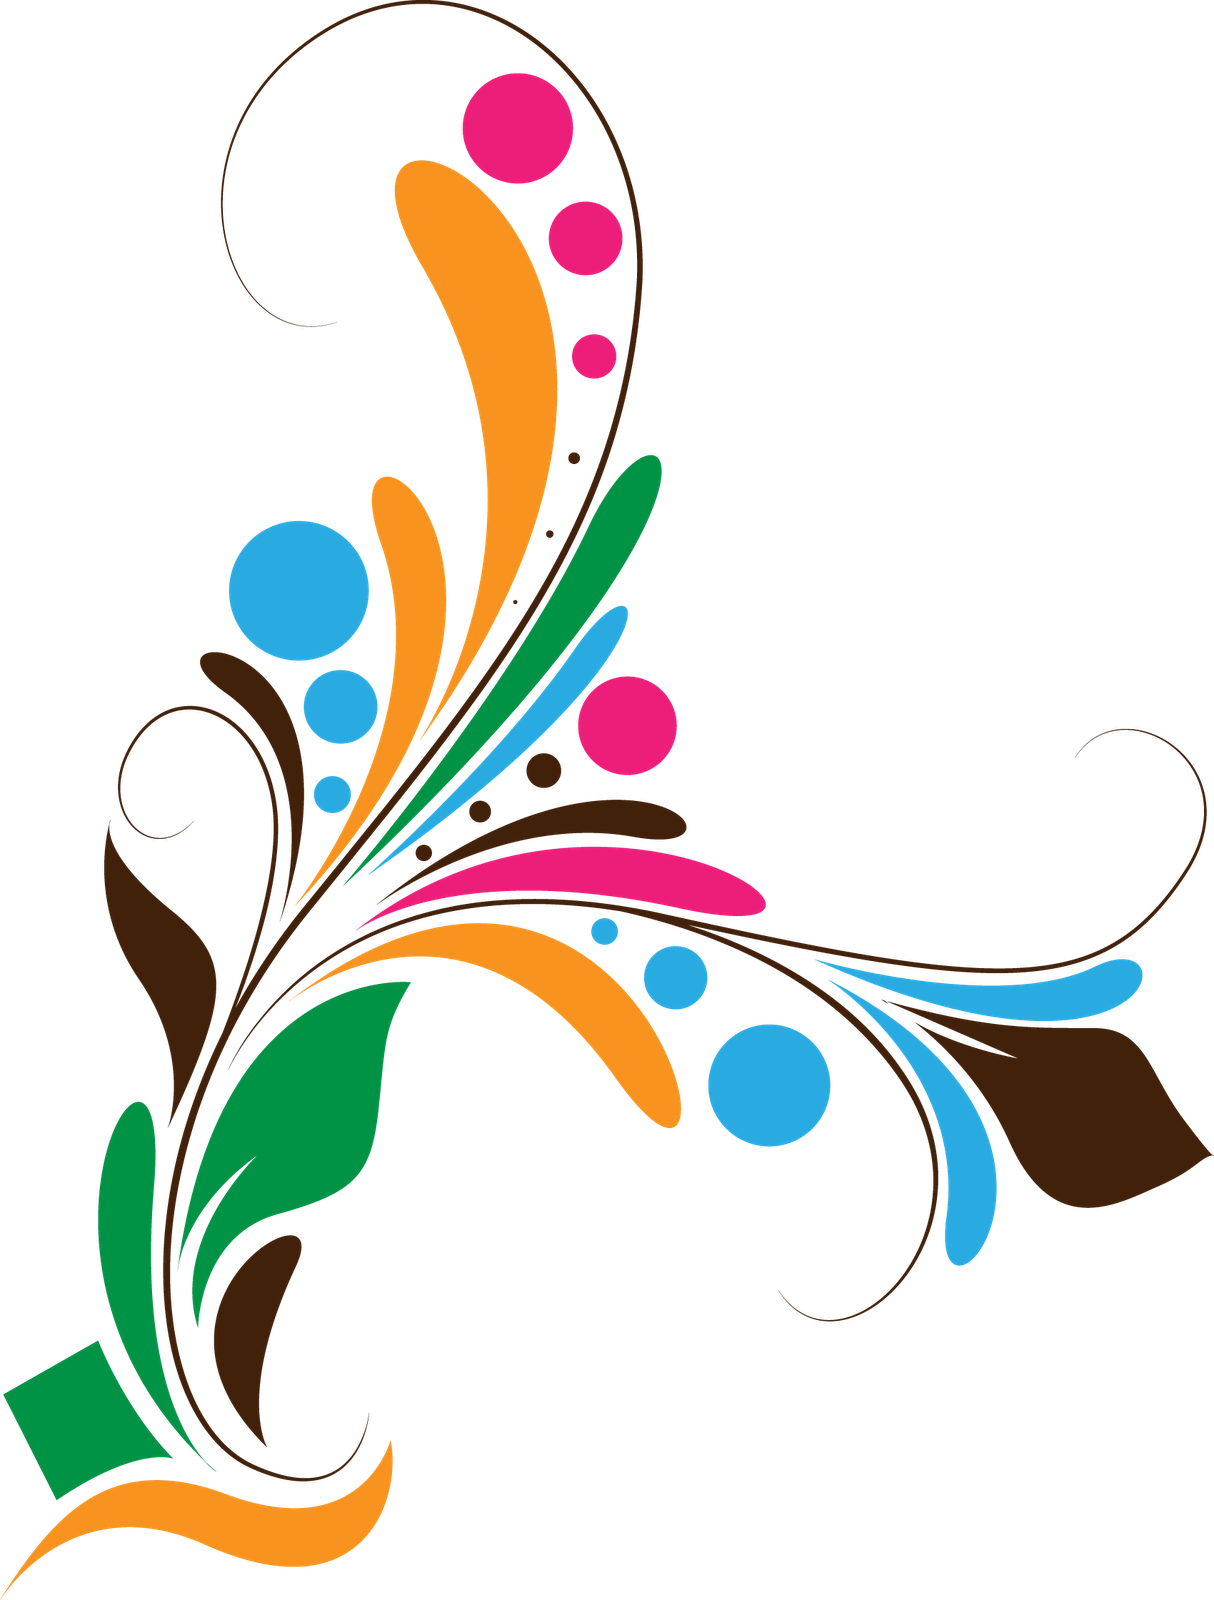 Corporate hd vector backgrounds png. Floral design borders and